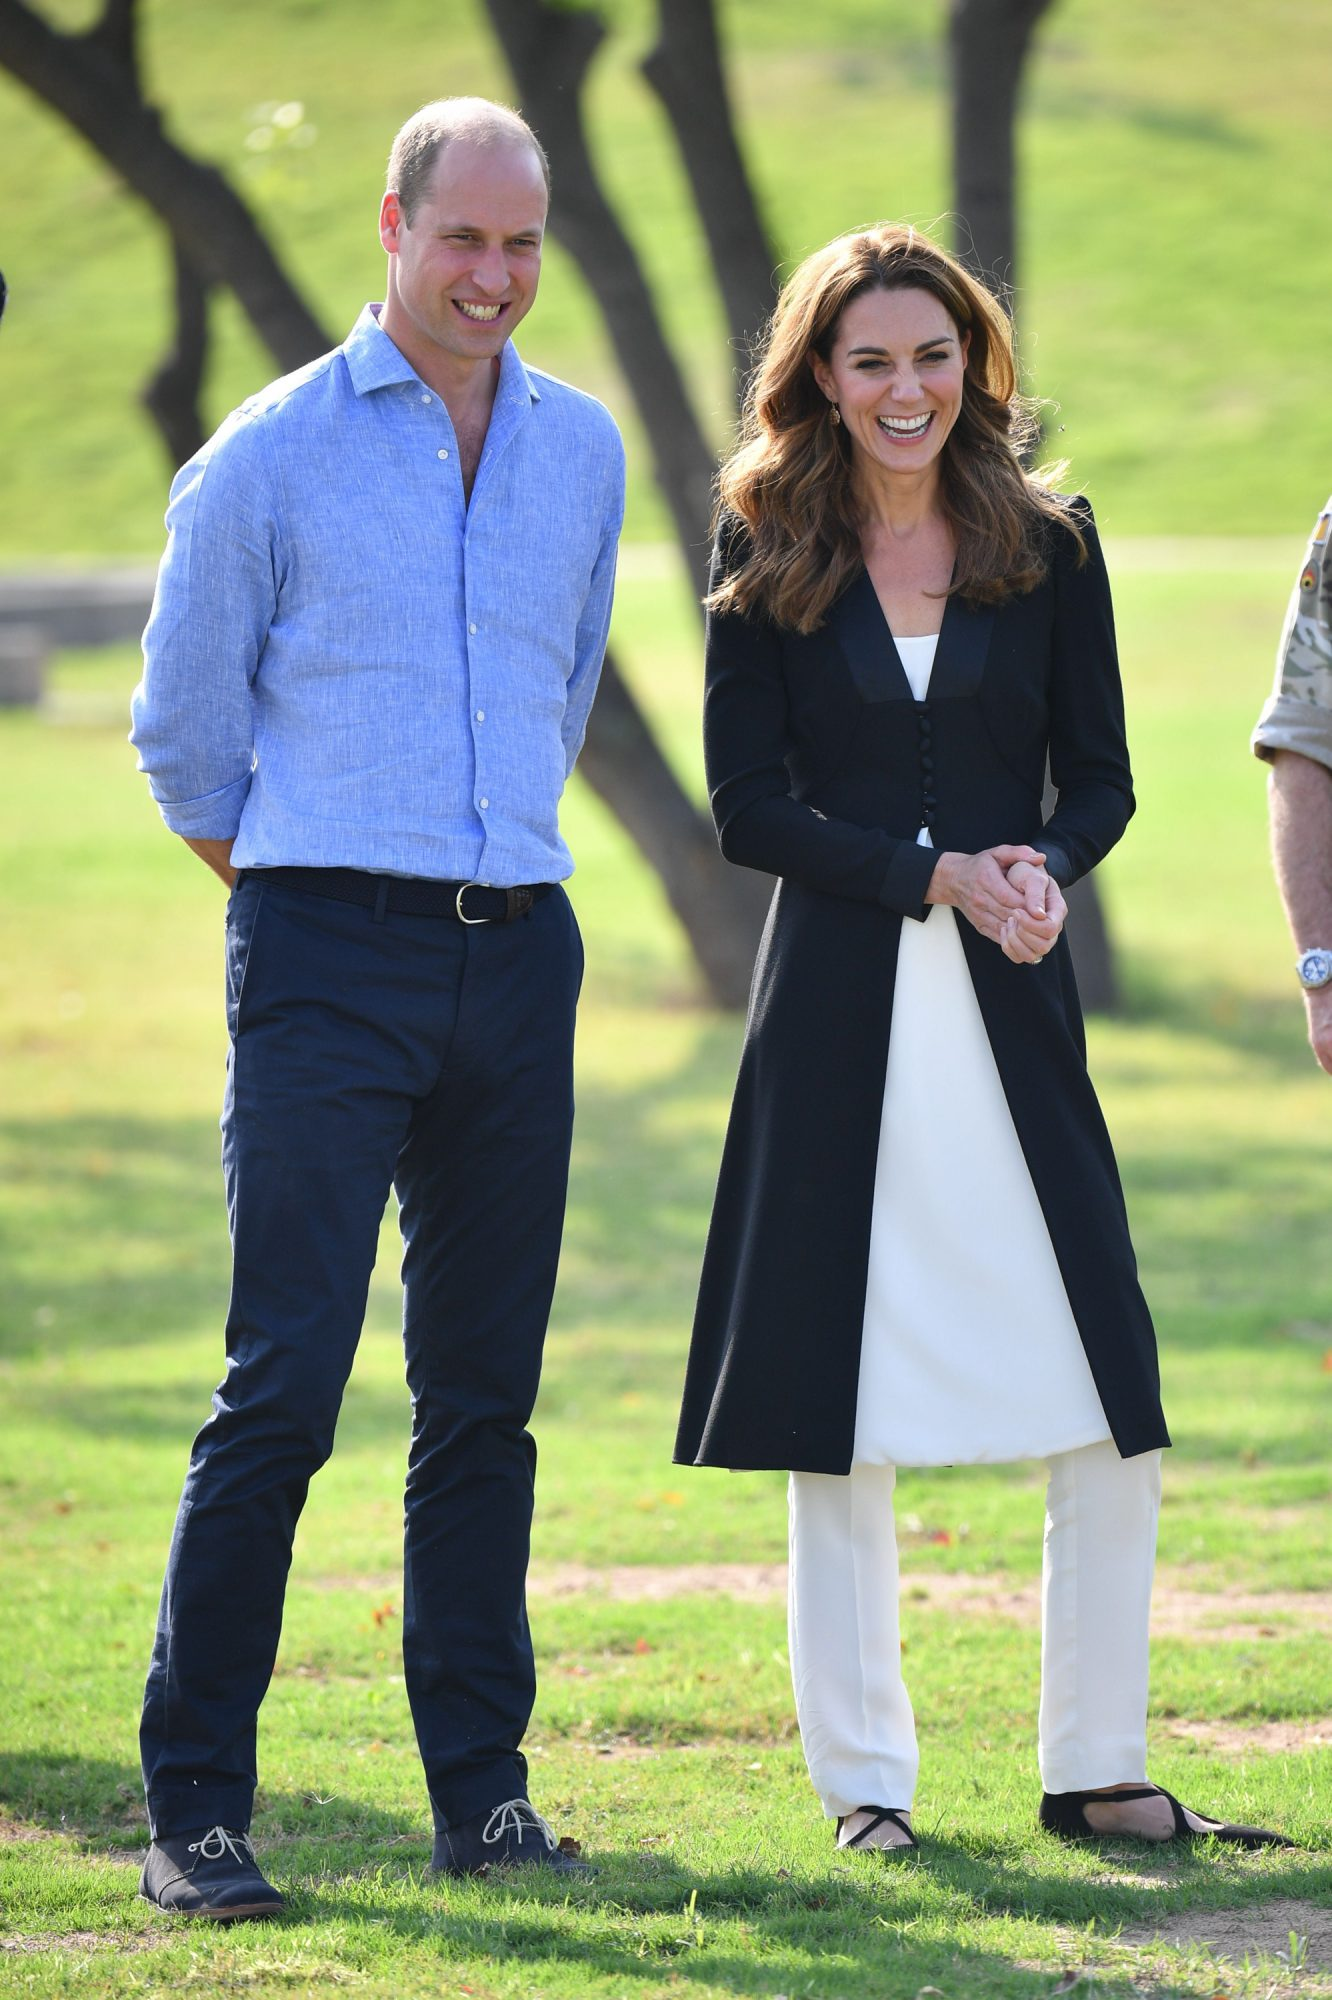 Prince William Reveals Kate Middleton's Guilty Pleasure Television Show—and Says He Watches, Too